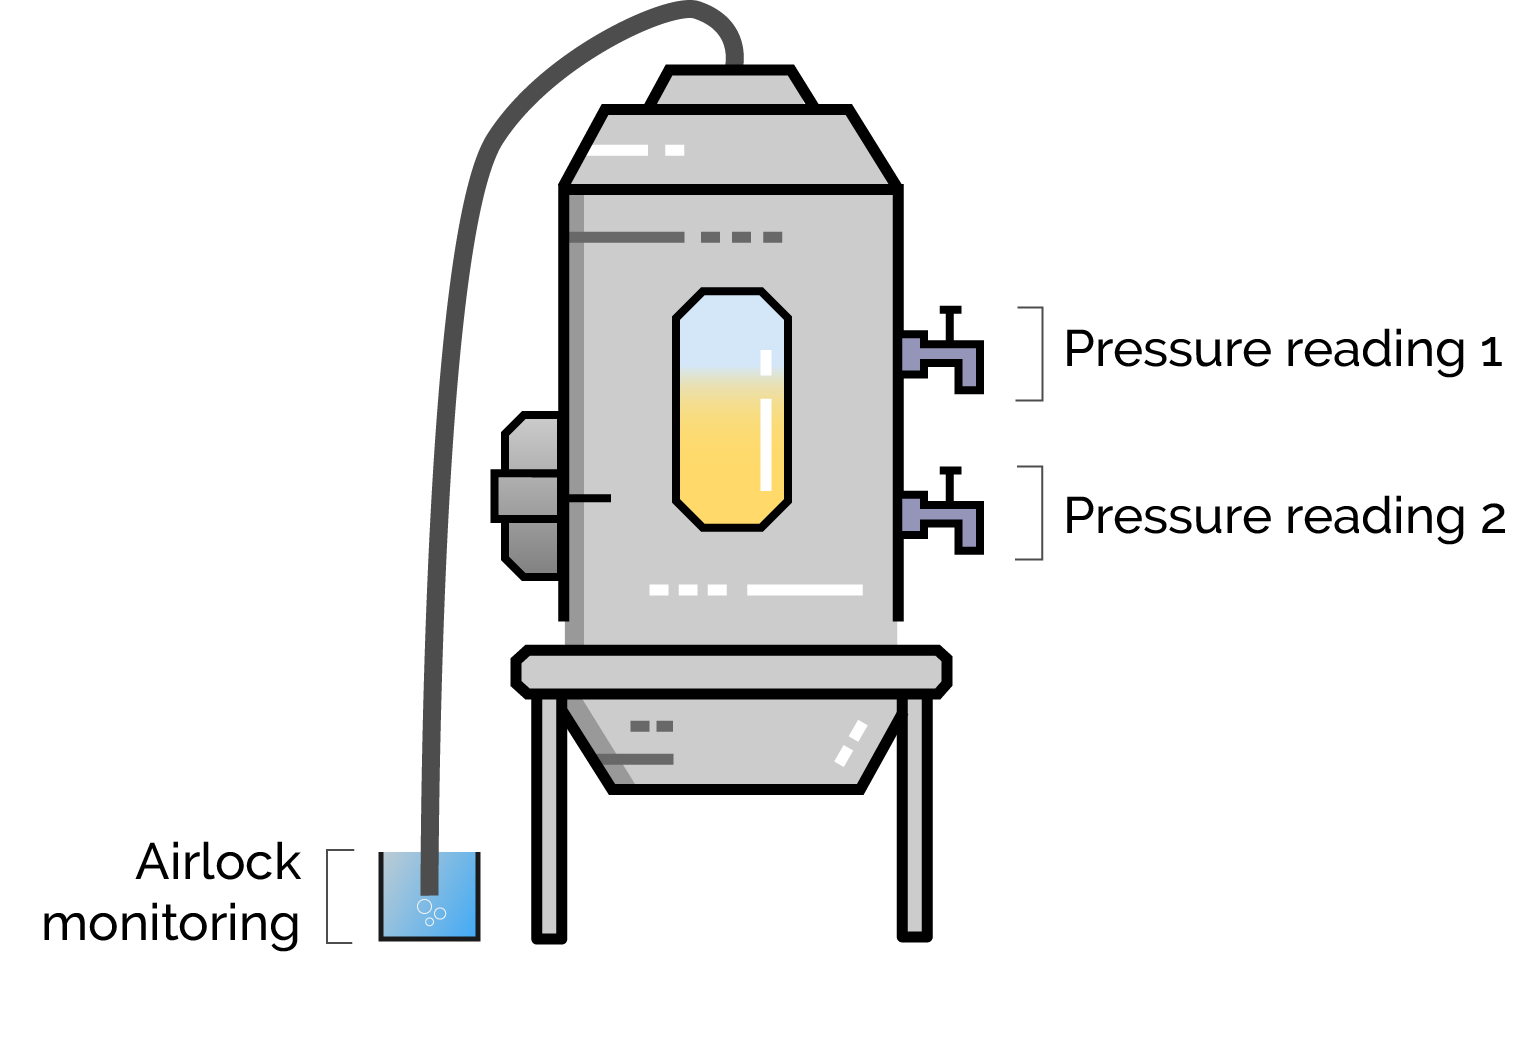 An image showing where to take the pressure readings and the location of airlock monitoring.